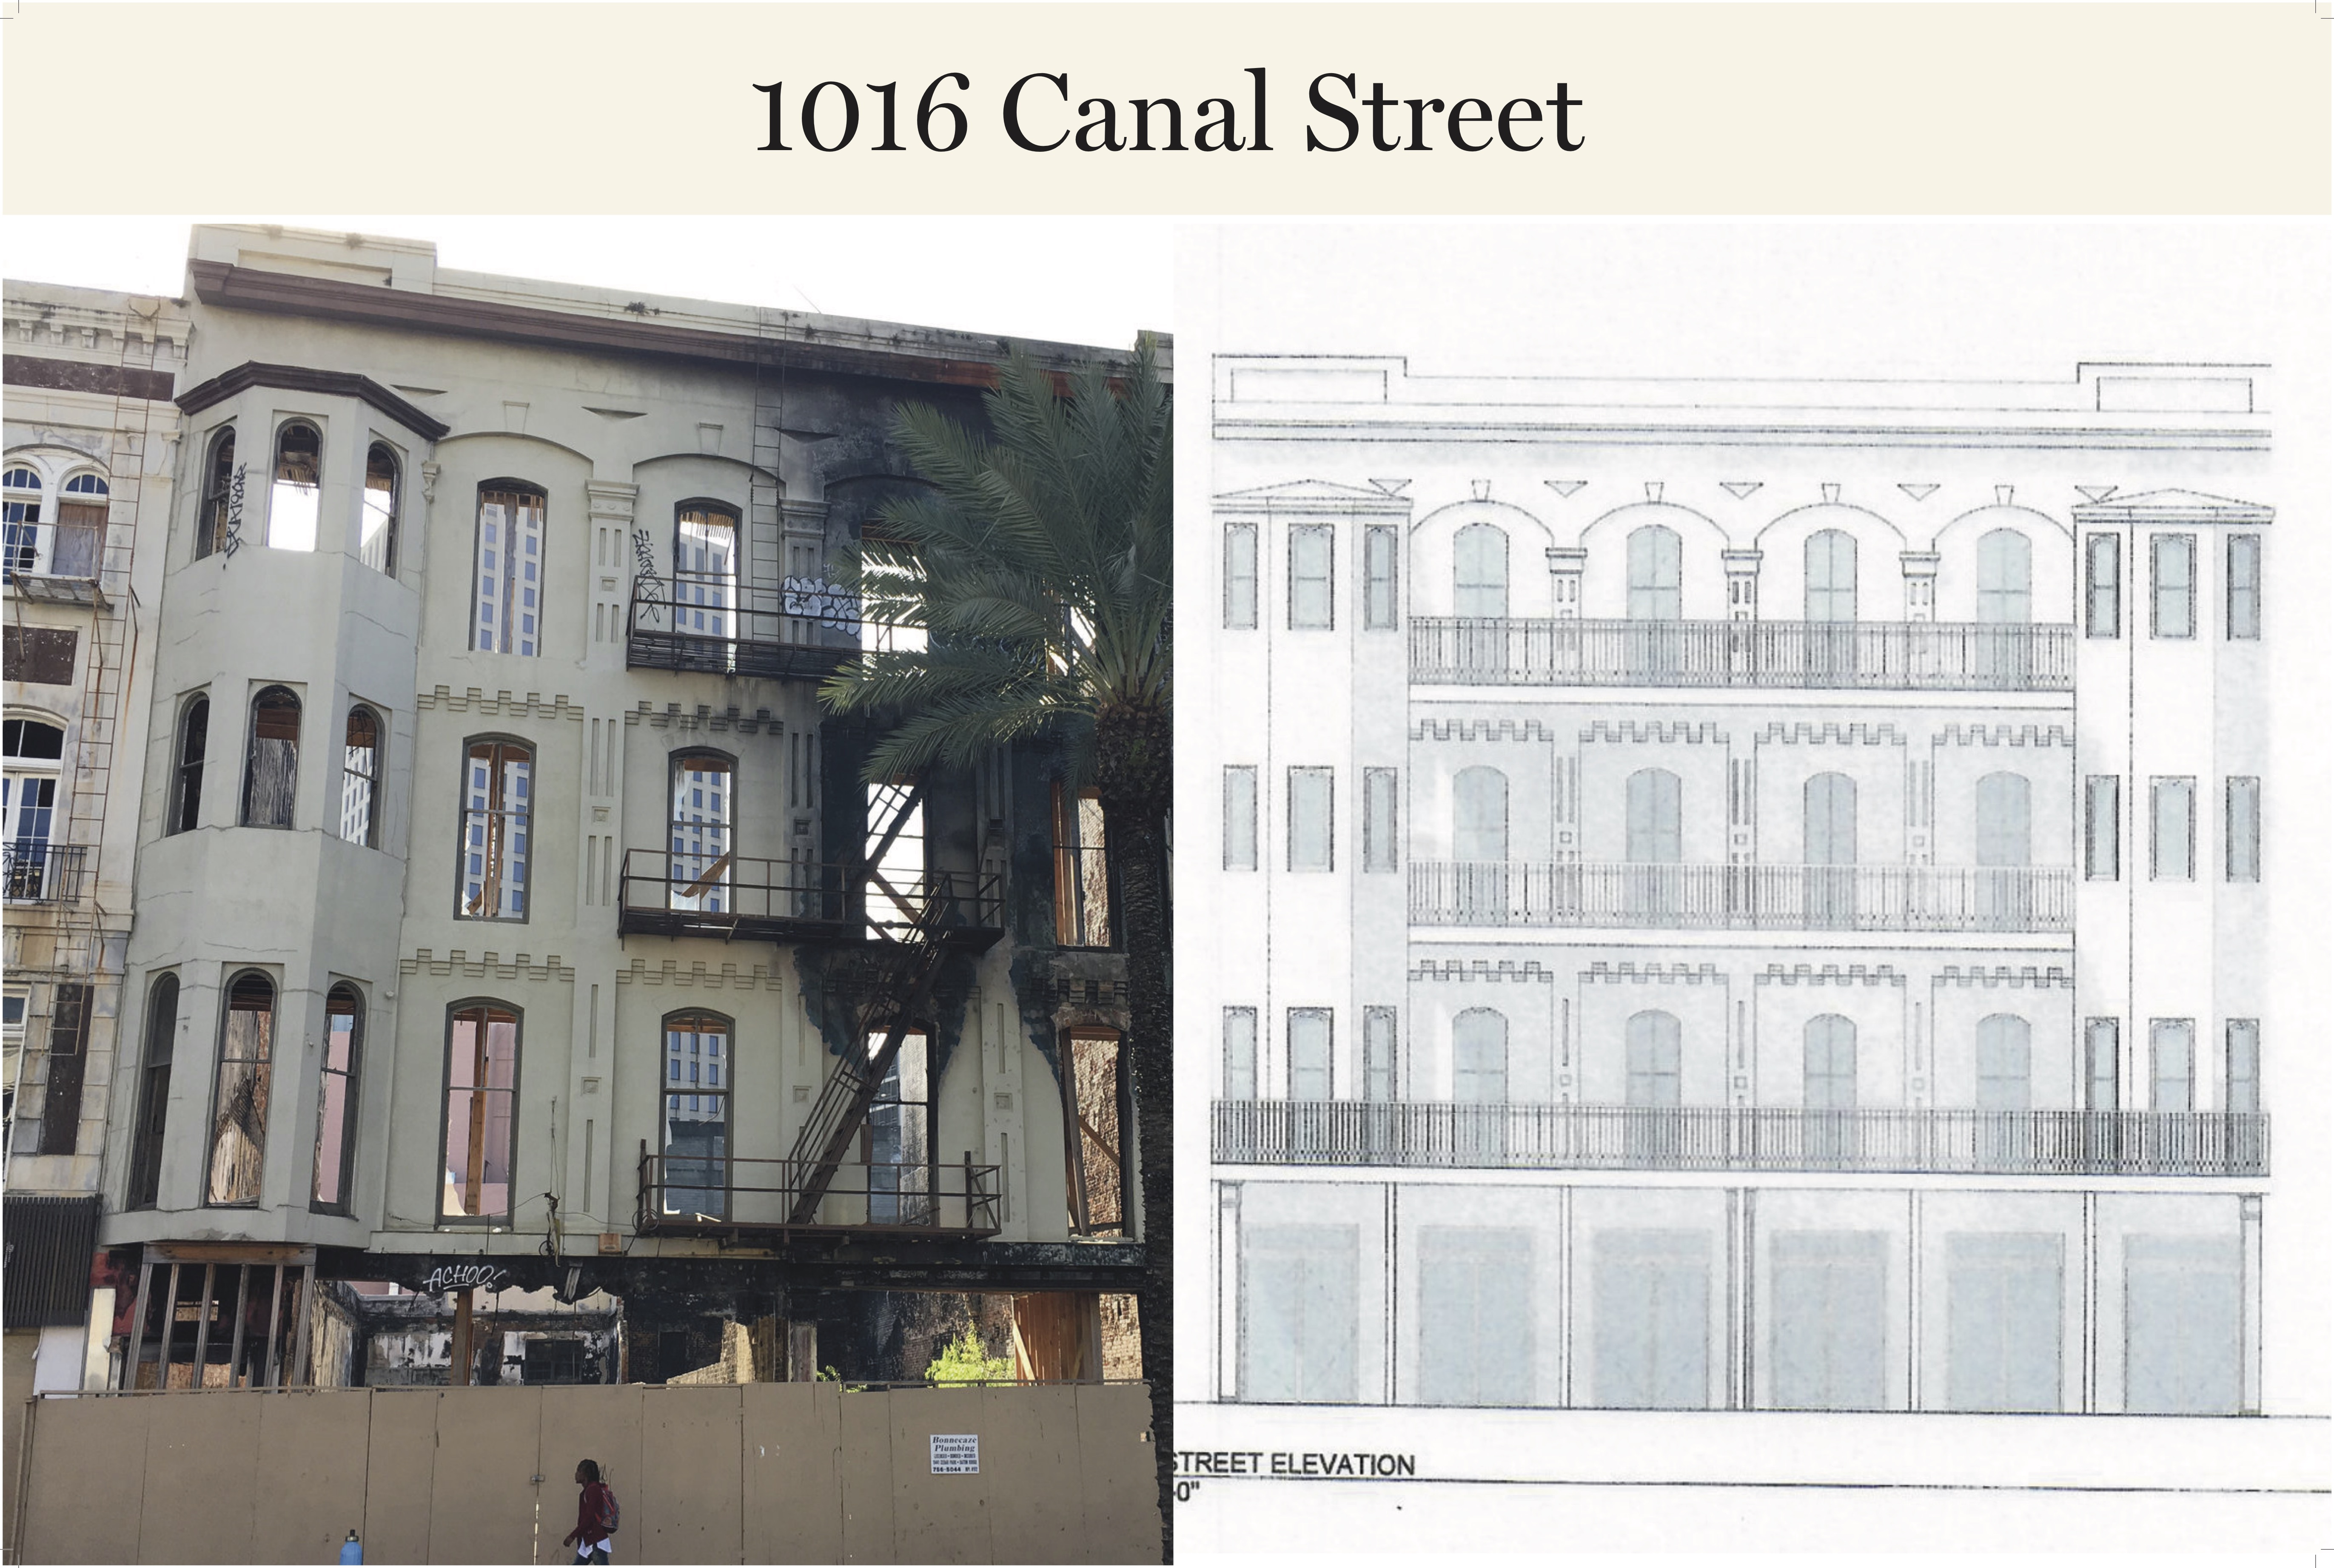 A $10M renovation brings retail short term rentals to 1016 Canal Street